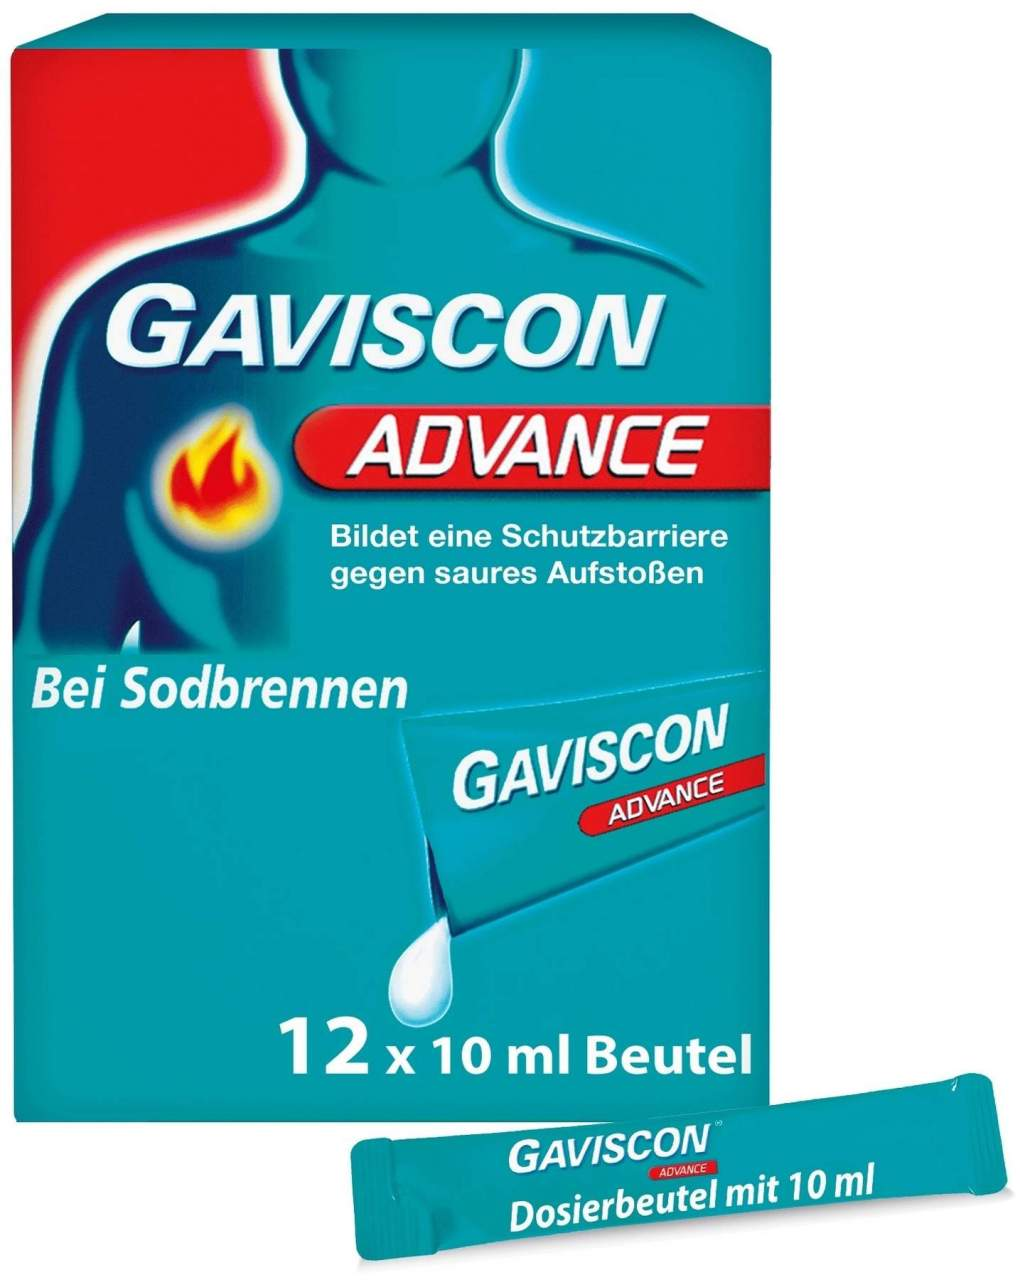 Gaviscon Advance Pfefferminz 12 x 10 ml Suspension von Reckitt Benckiser Deutschla